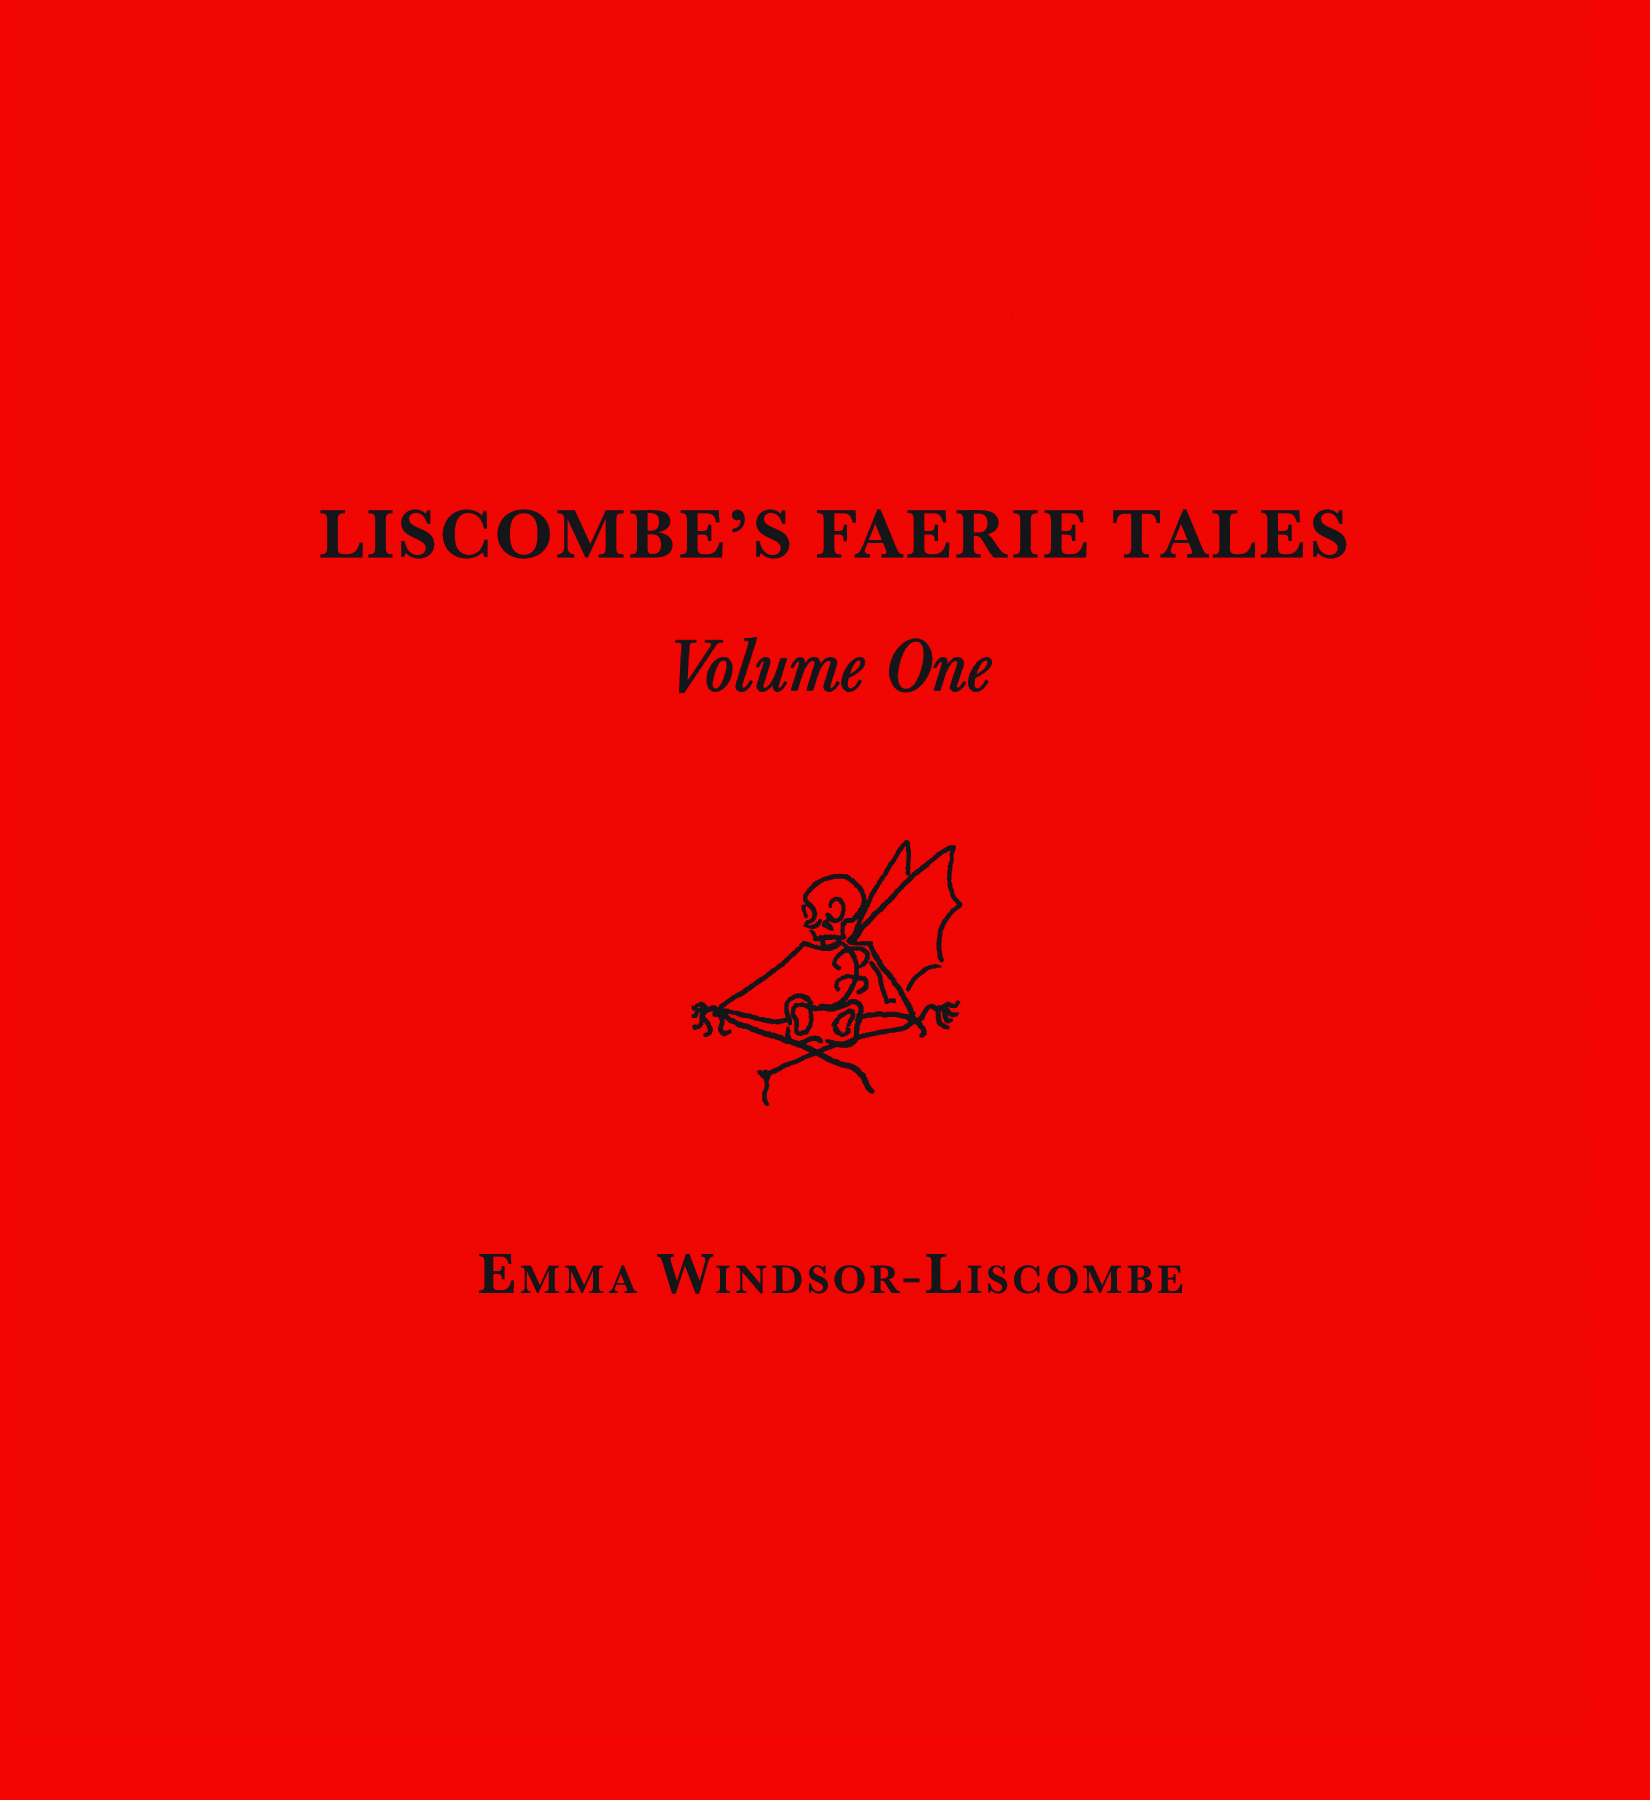 Liscombe's Fairy Tales